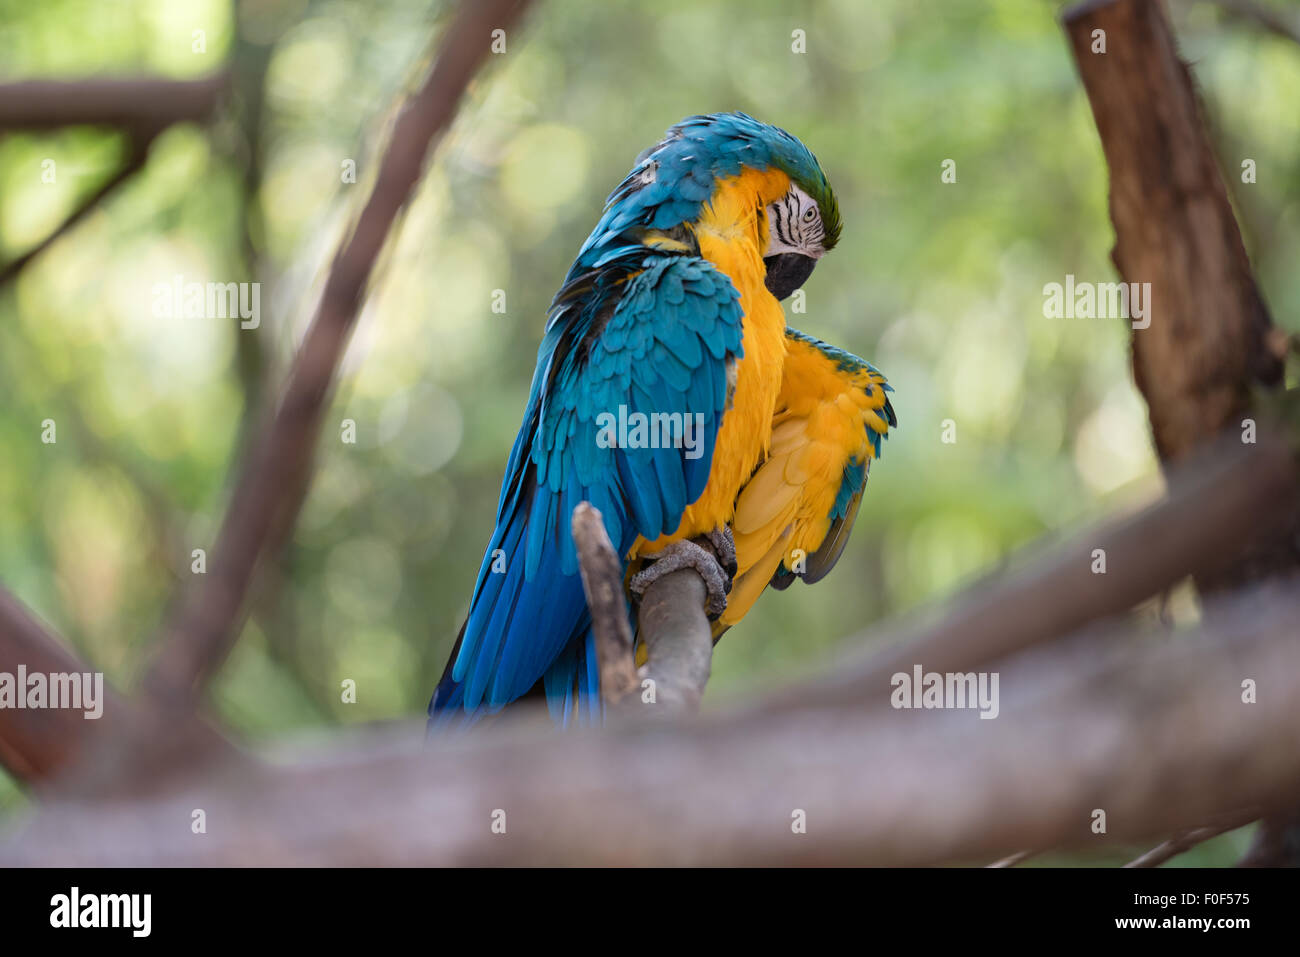 A colorful Macaw sitting on a branch surrounded by trees lifting its wing. - Stock Image